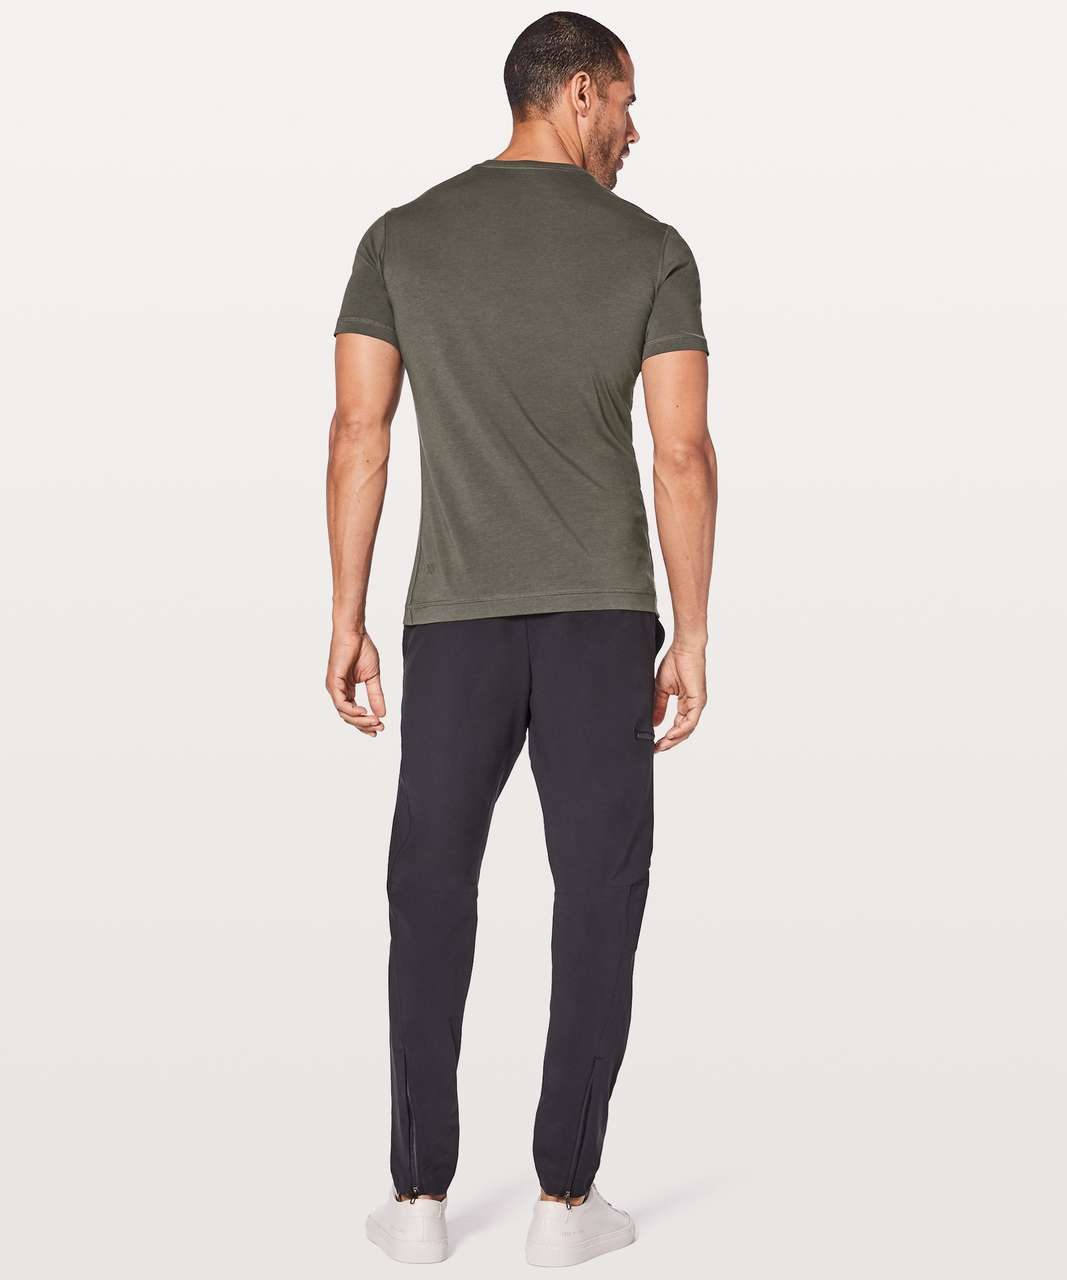 Lululemon 5 Year Basic Tee - Stoney